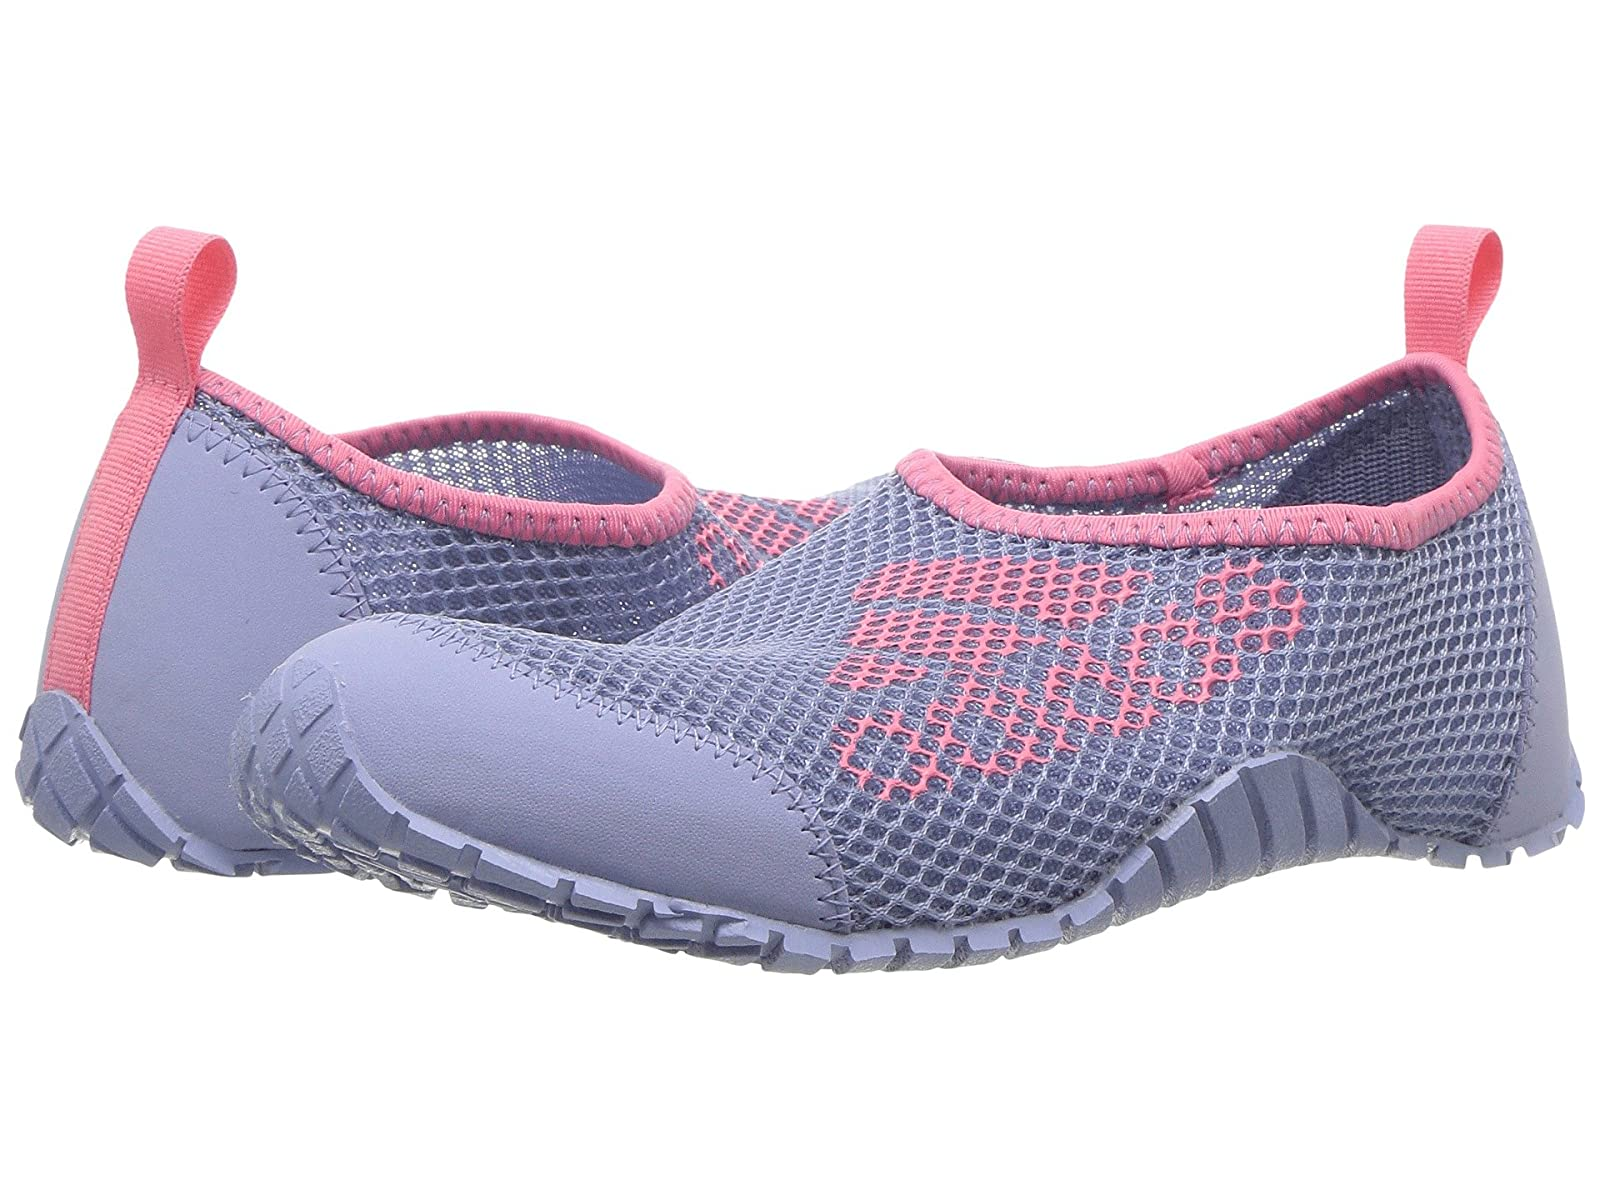 adidas Outdoor Kids Kurobe (Toddler/Little Kid/Big Kid)Atmospheric grades have affordable shoes